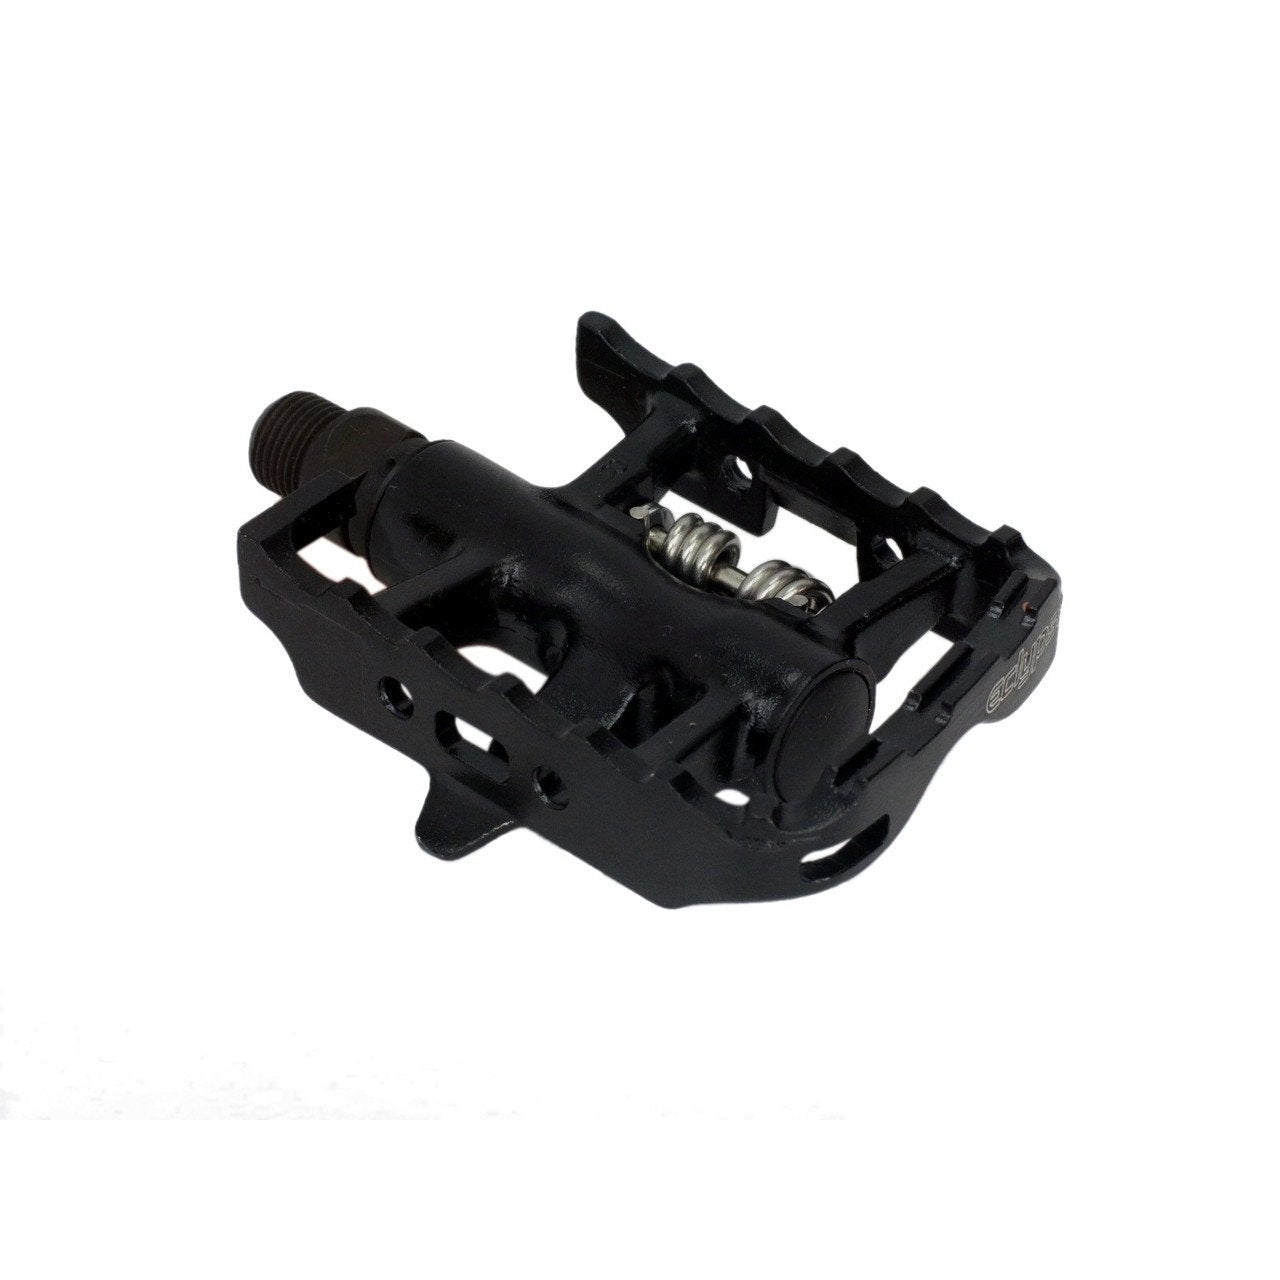 Eclypse - Multi-Sport 3 Pedals-Bike Accessories-Kunstadt Sports